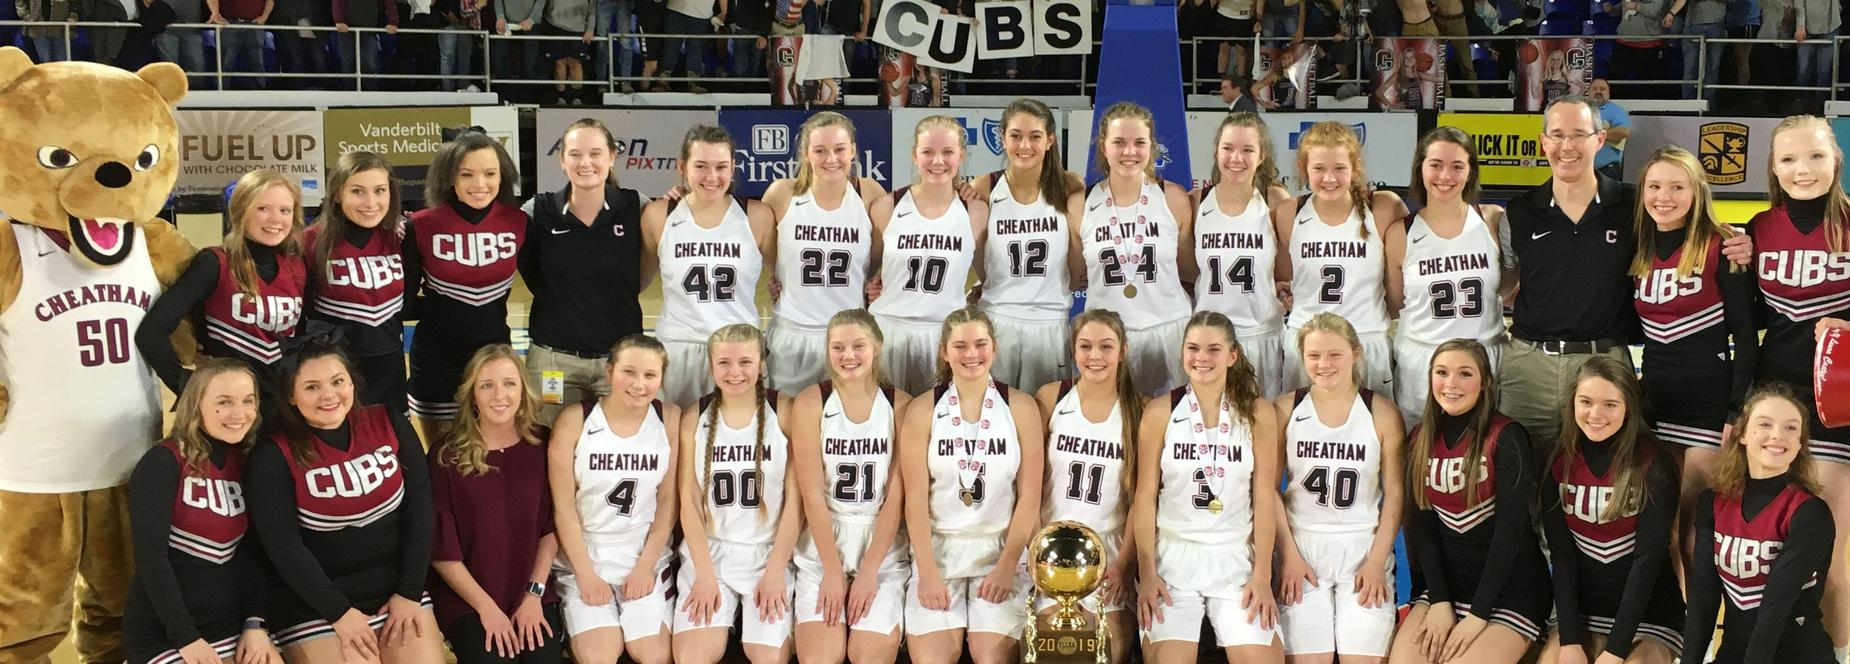 The Cheatham County Central High School Lady Cubs won the 2019 Class AA state basketball championship.